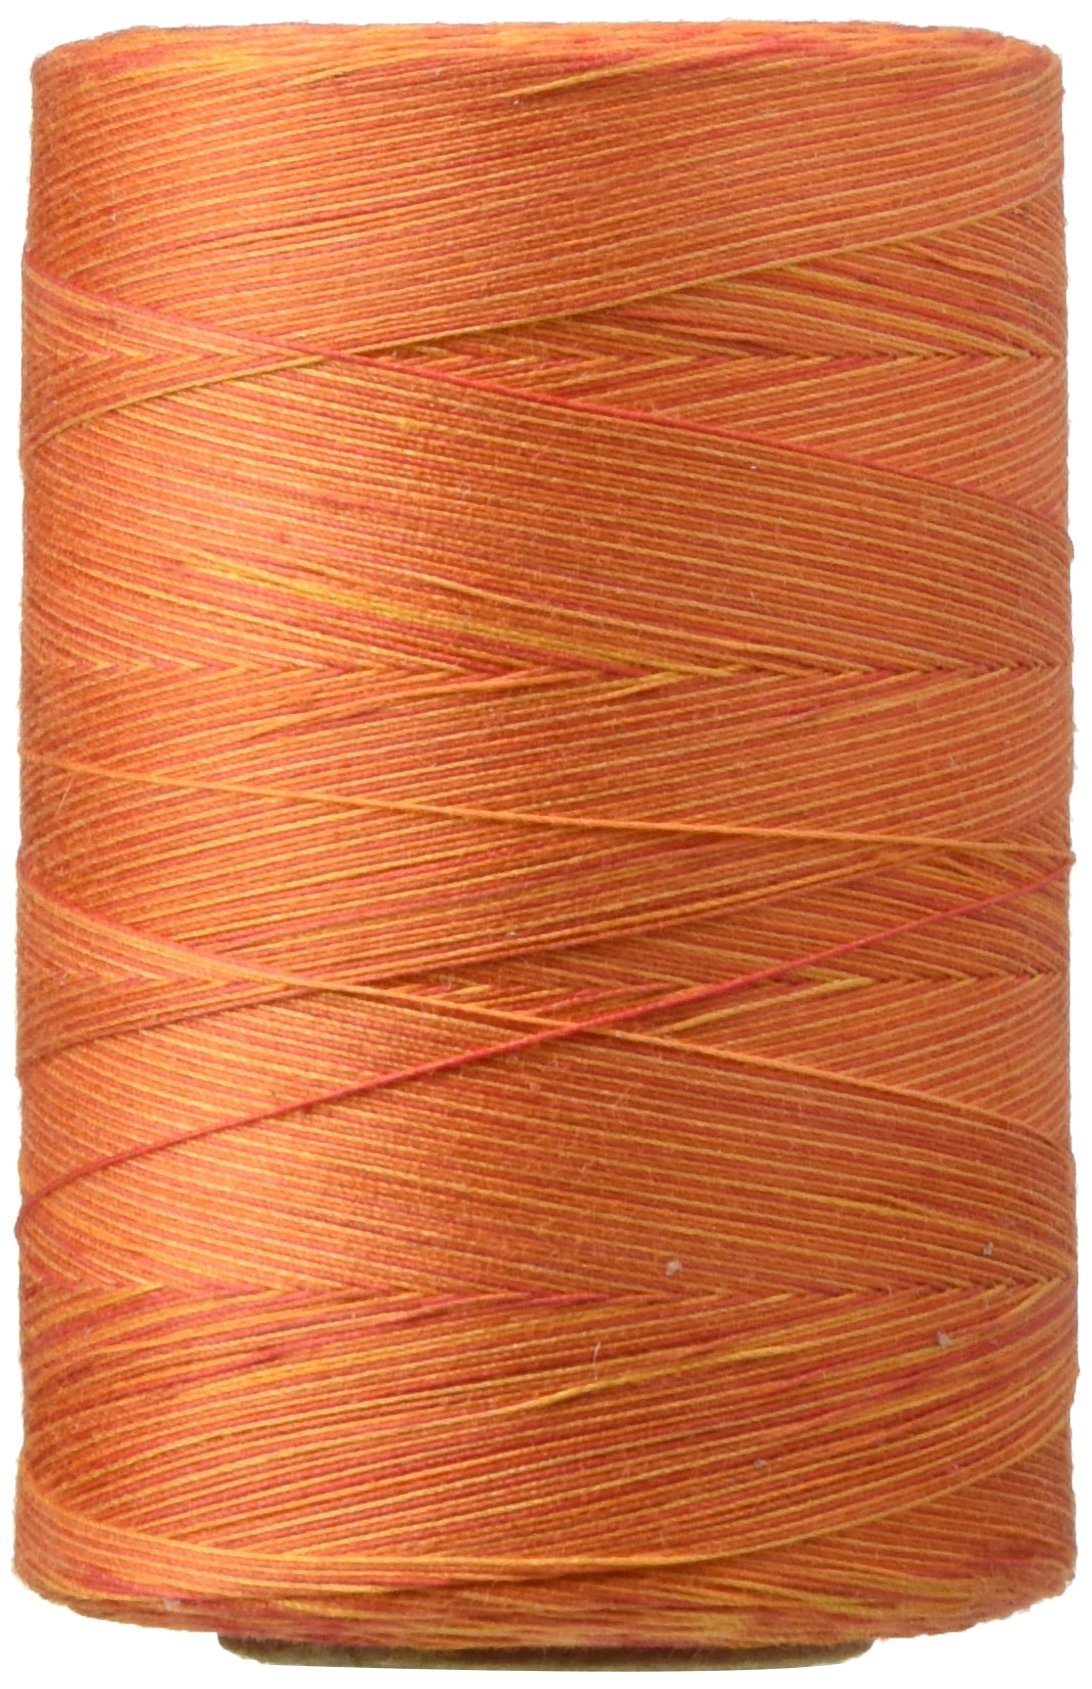 Star Thread V38-838 3-Ply 30wt T-35 Cotton Quilting & Craft Variegated Thread, 1200 yd, Canyon Sunset